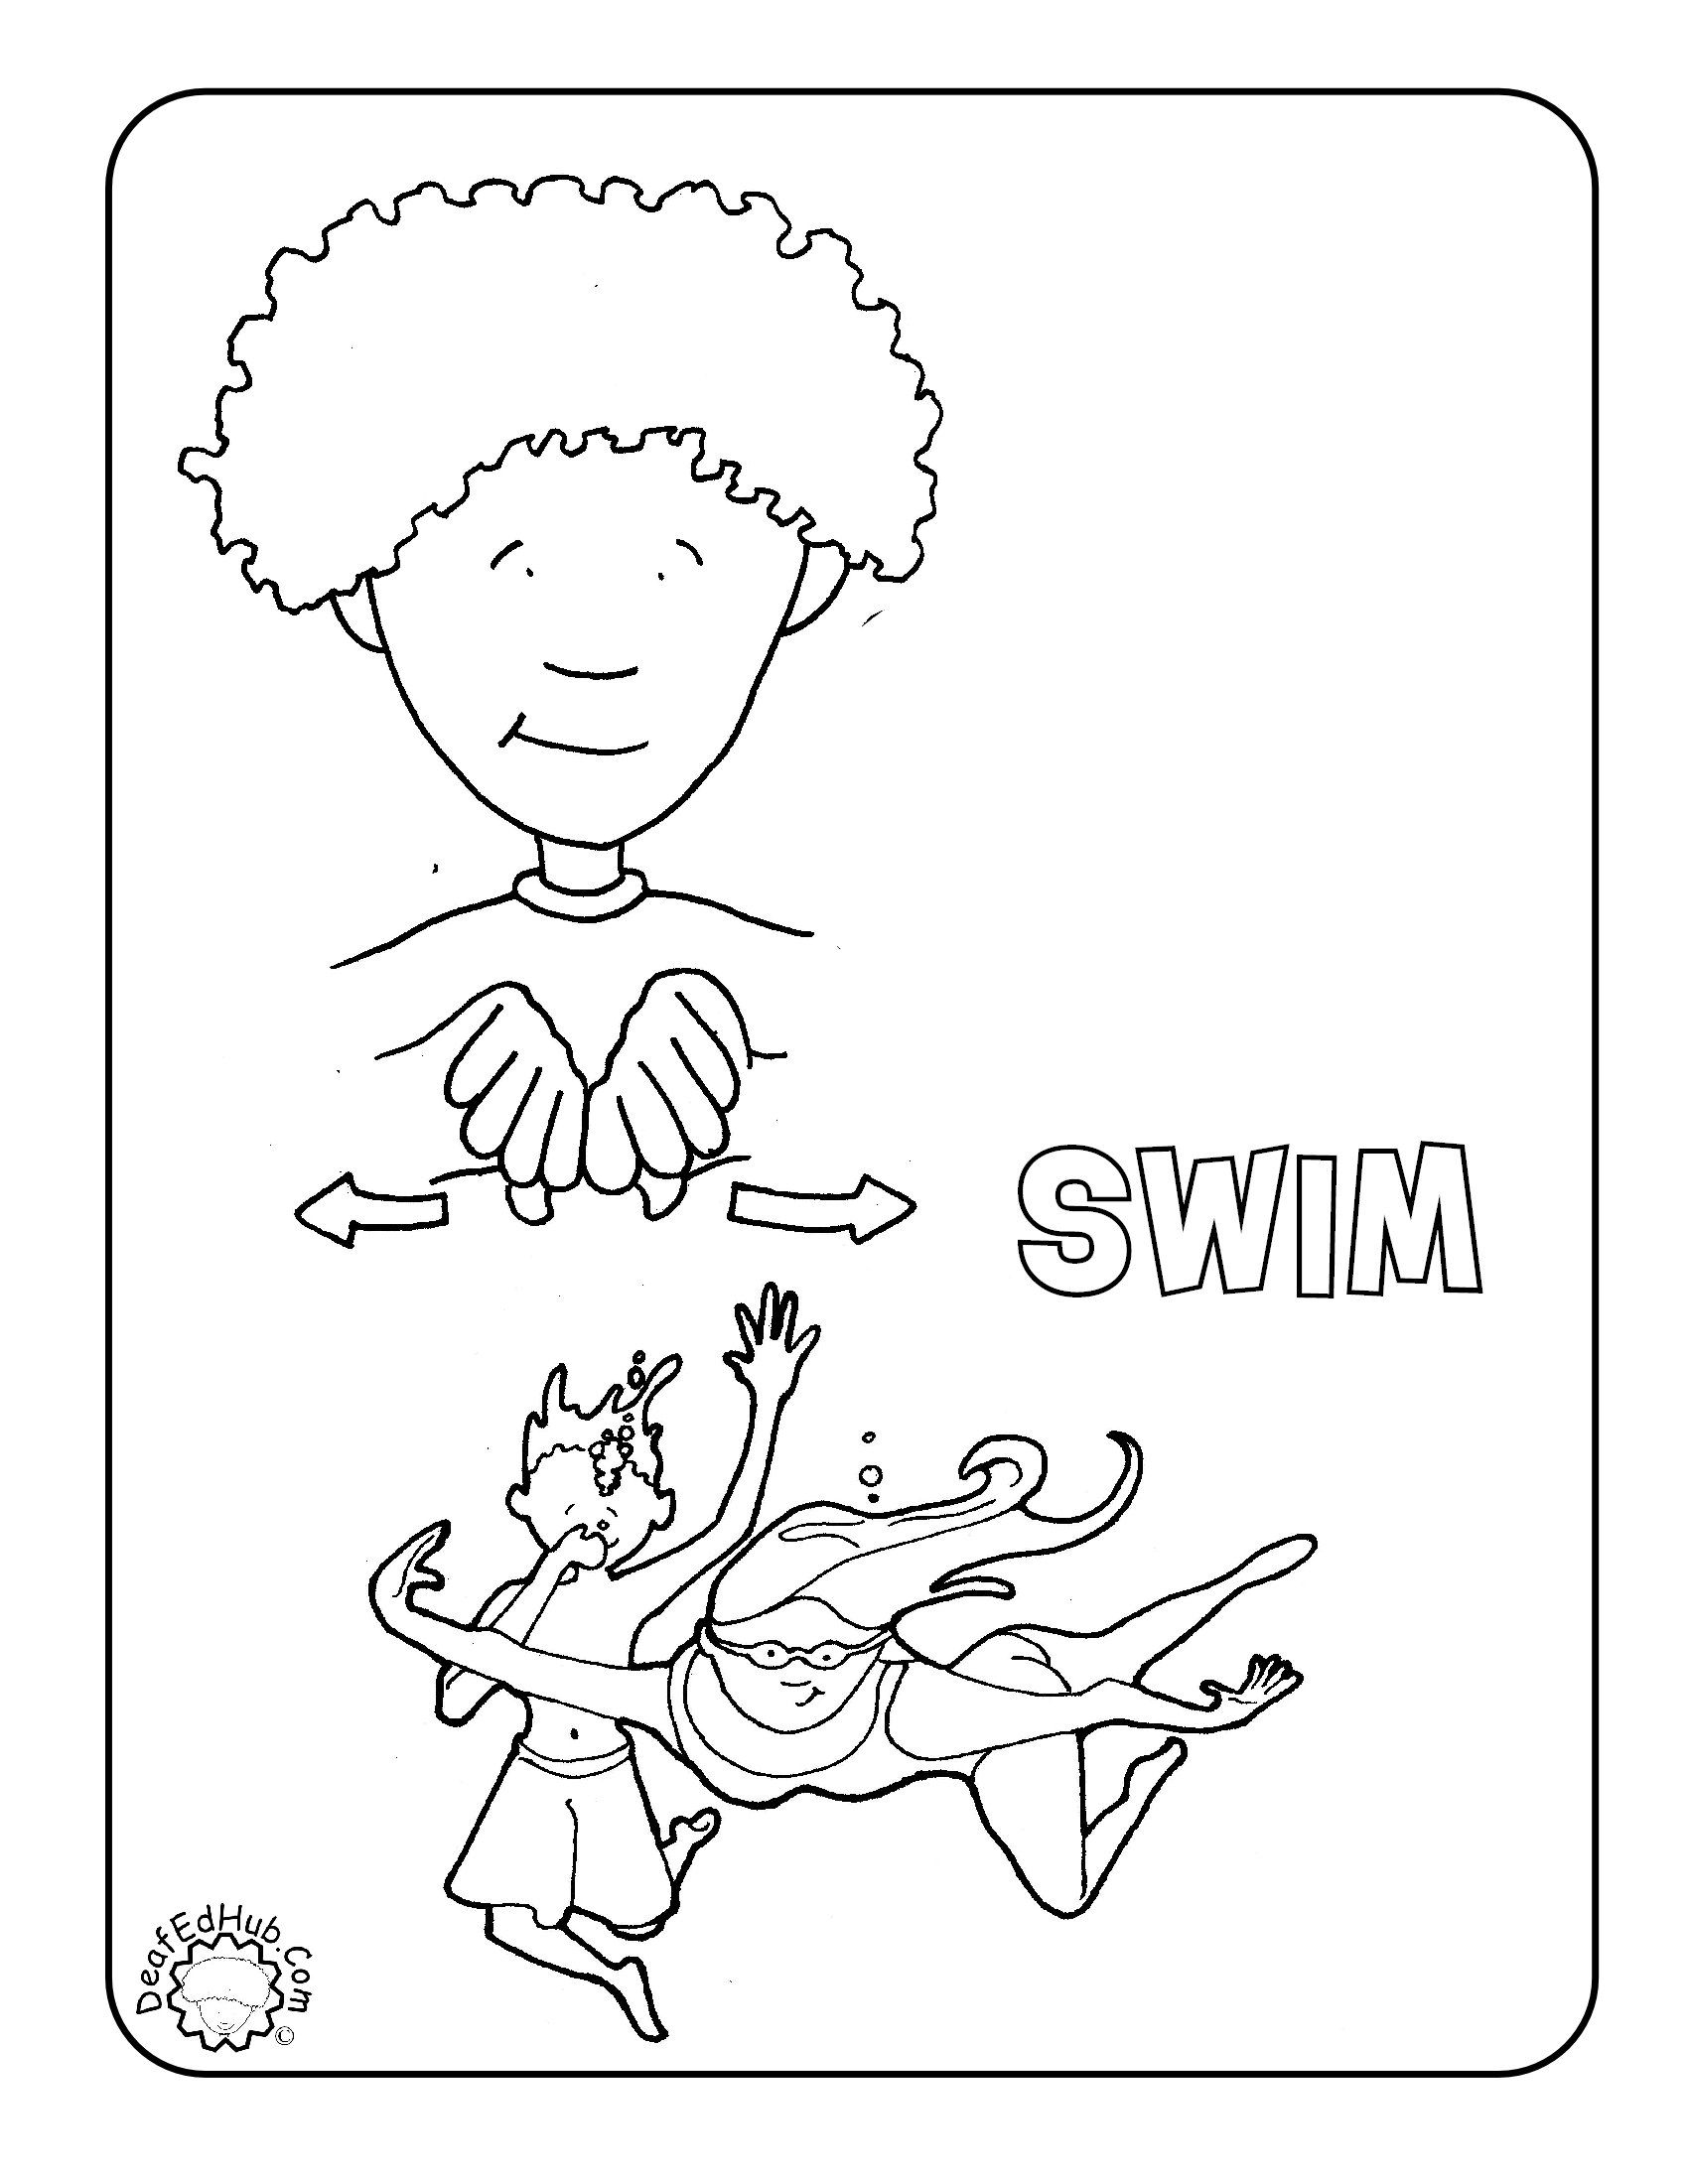 #ASL coloring page for the sign 'swim' #DeafEdHub